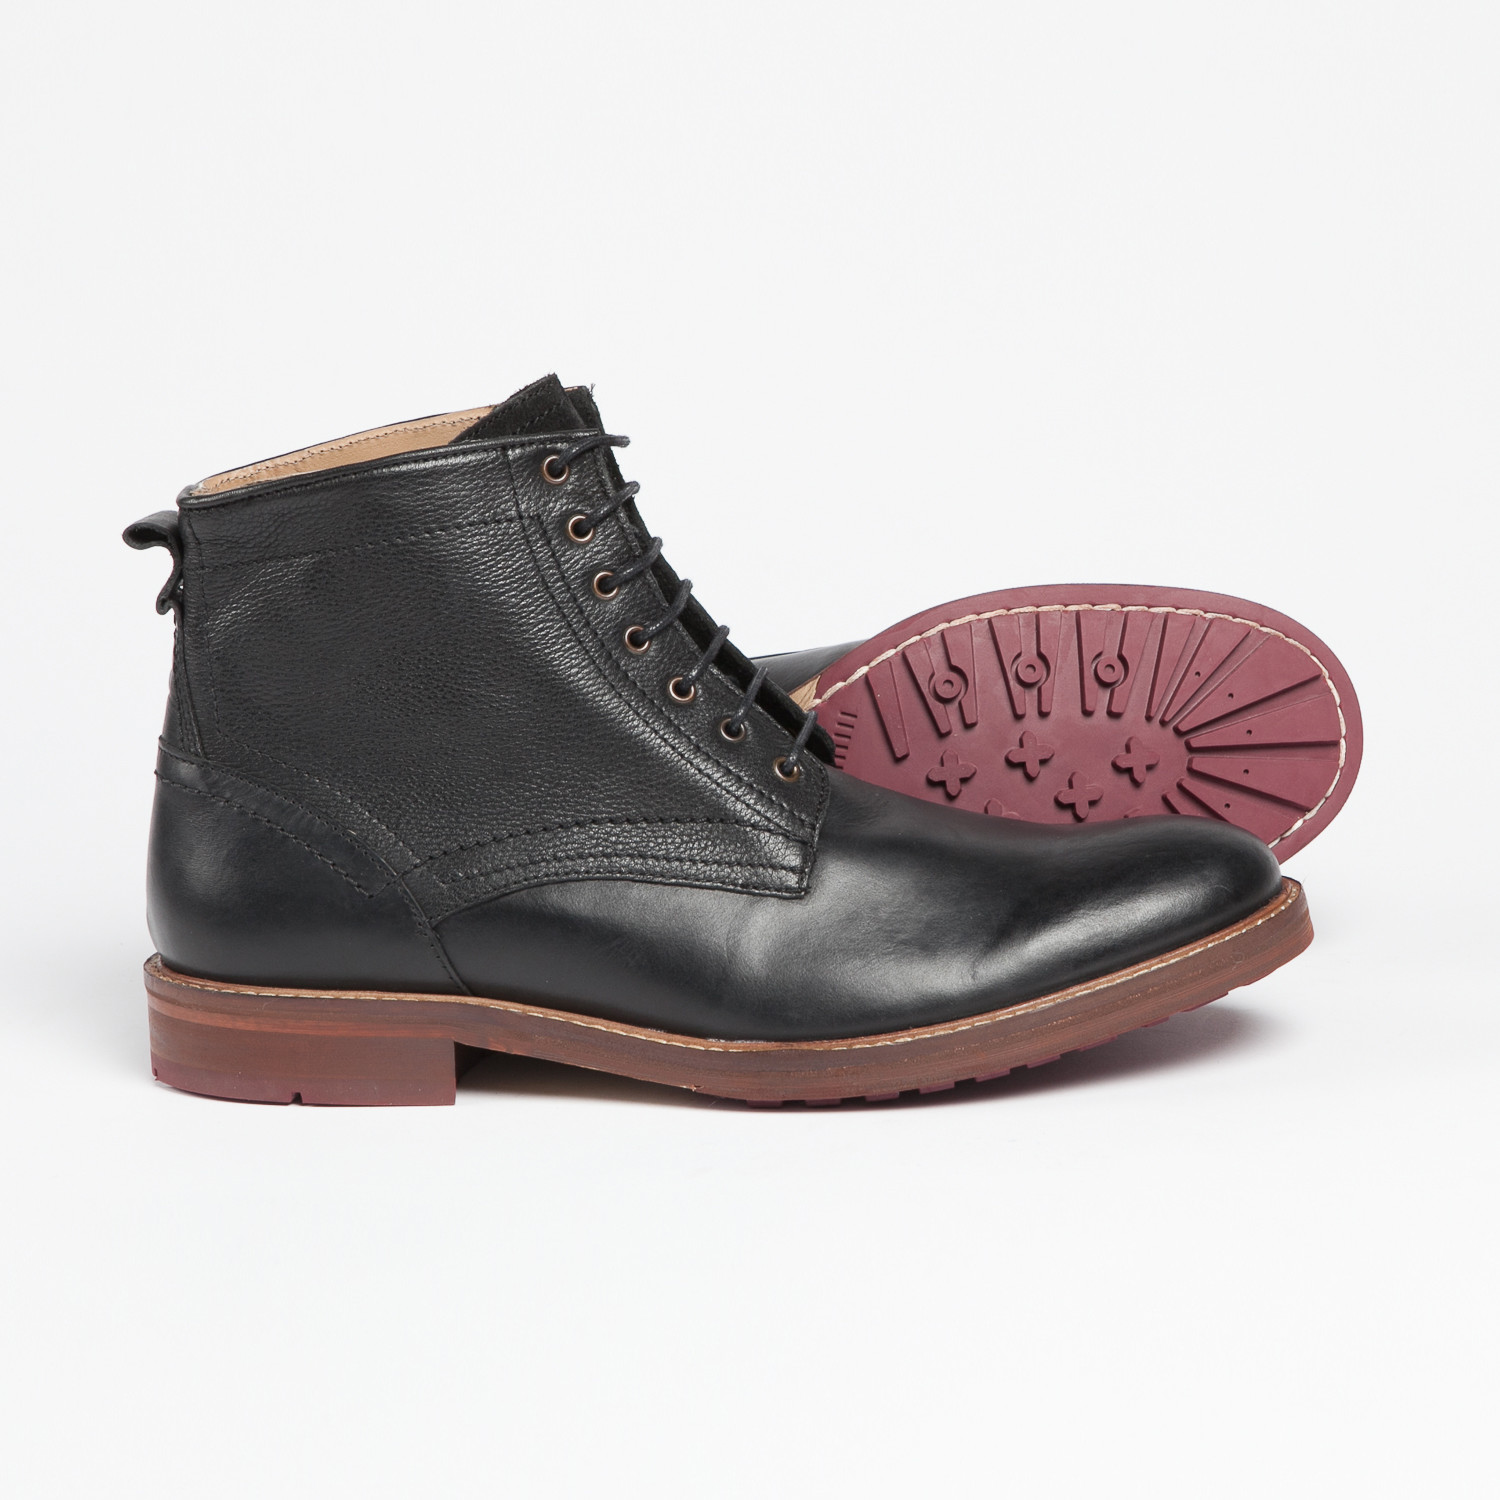 1d7e64c5538 Chancery Lace-Up Boot // Black (UK: 7.5) - Merc Shoes - Touch of Modern